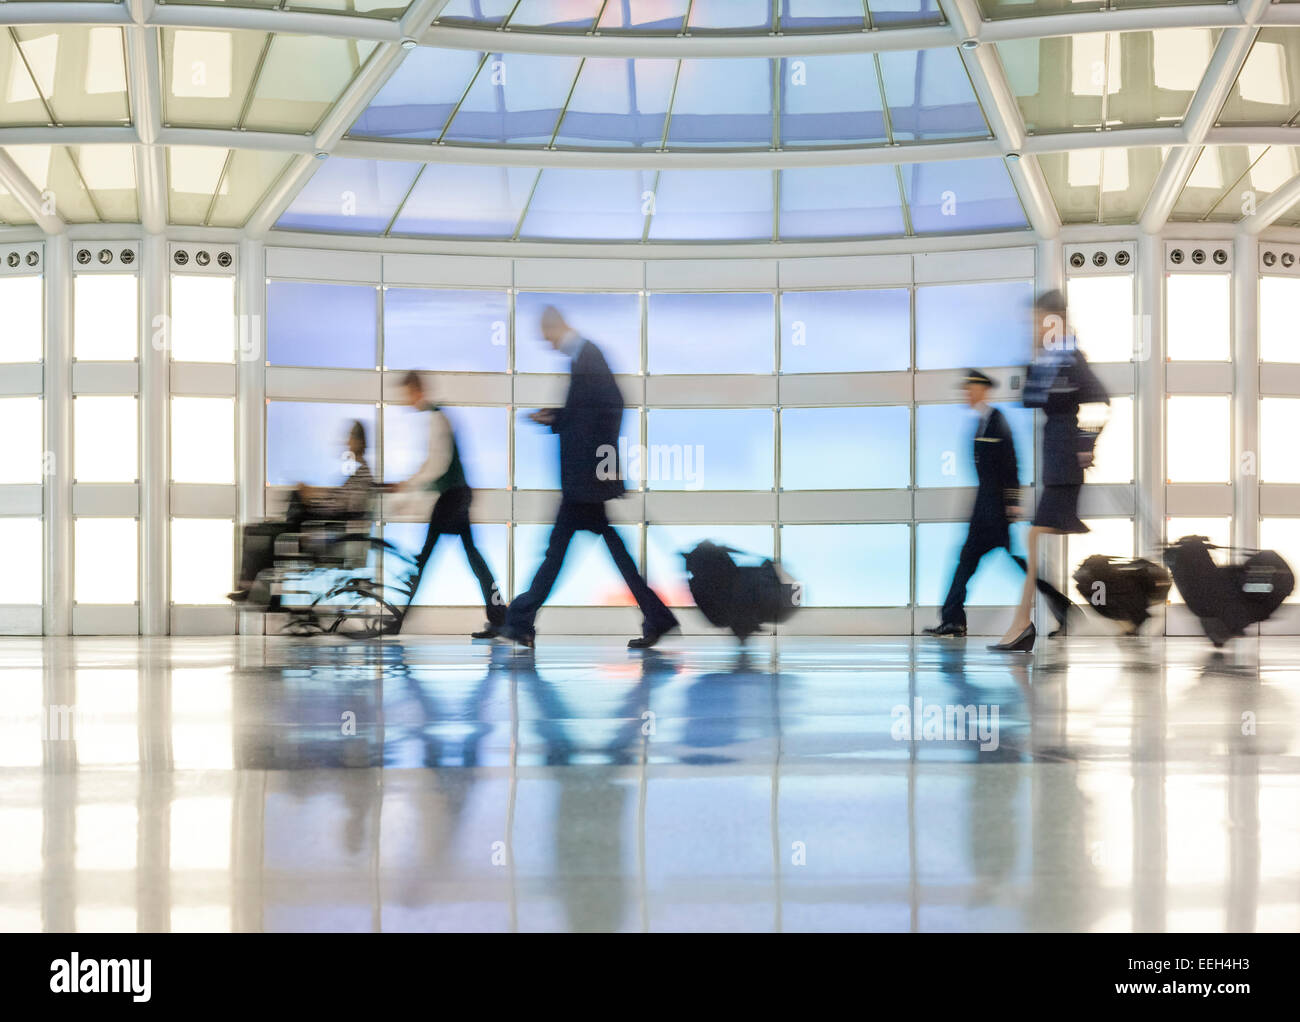 https://c7.alamy.com/comp/EEH4H3/united-terminal-pedestrian-tunnel-at-chicago-ohare-international-airport-EEH4H3.jpg